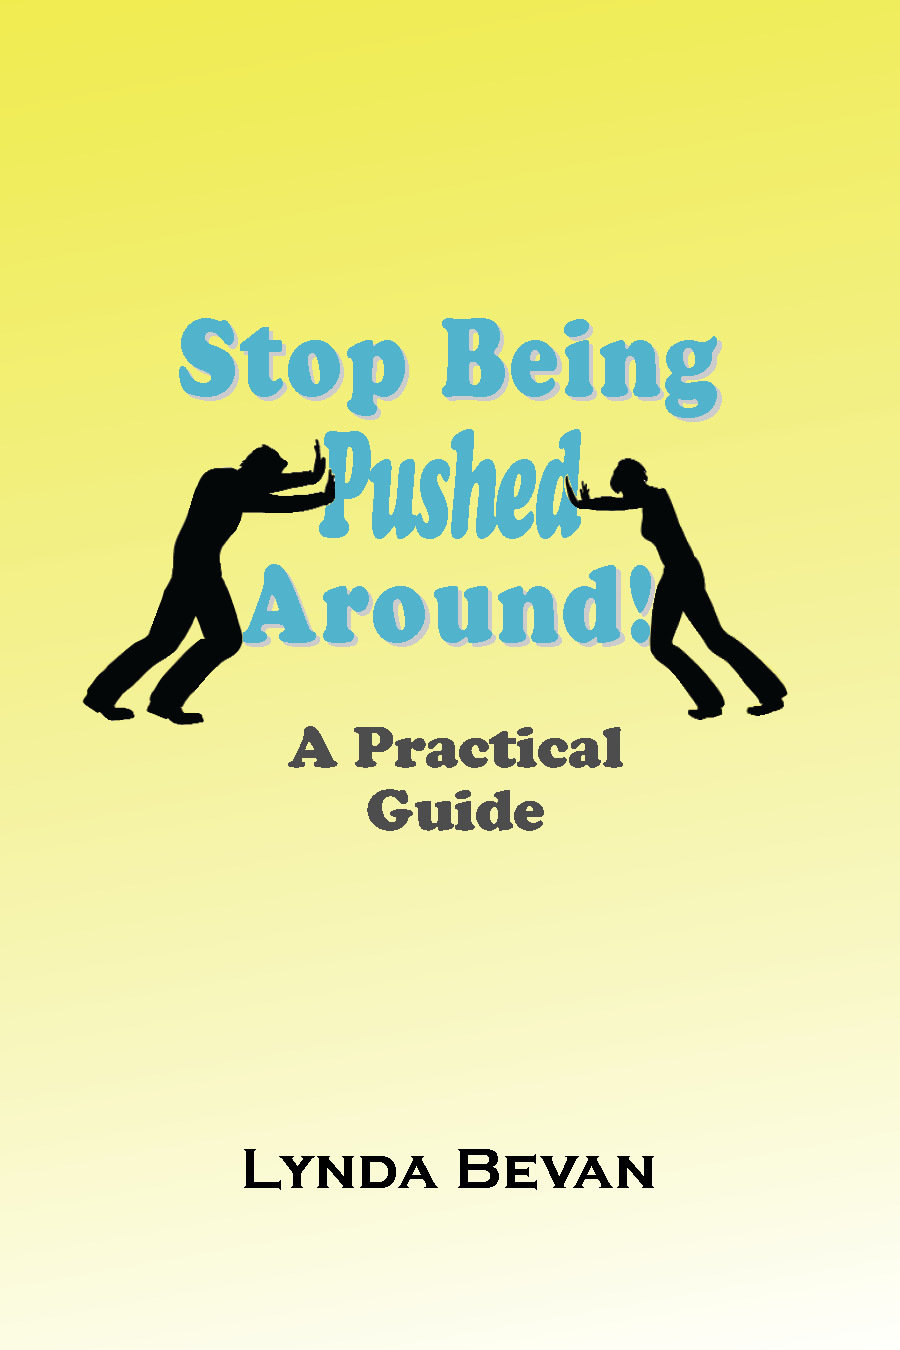 Stop Being Pushed Around: A Practical Guide